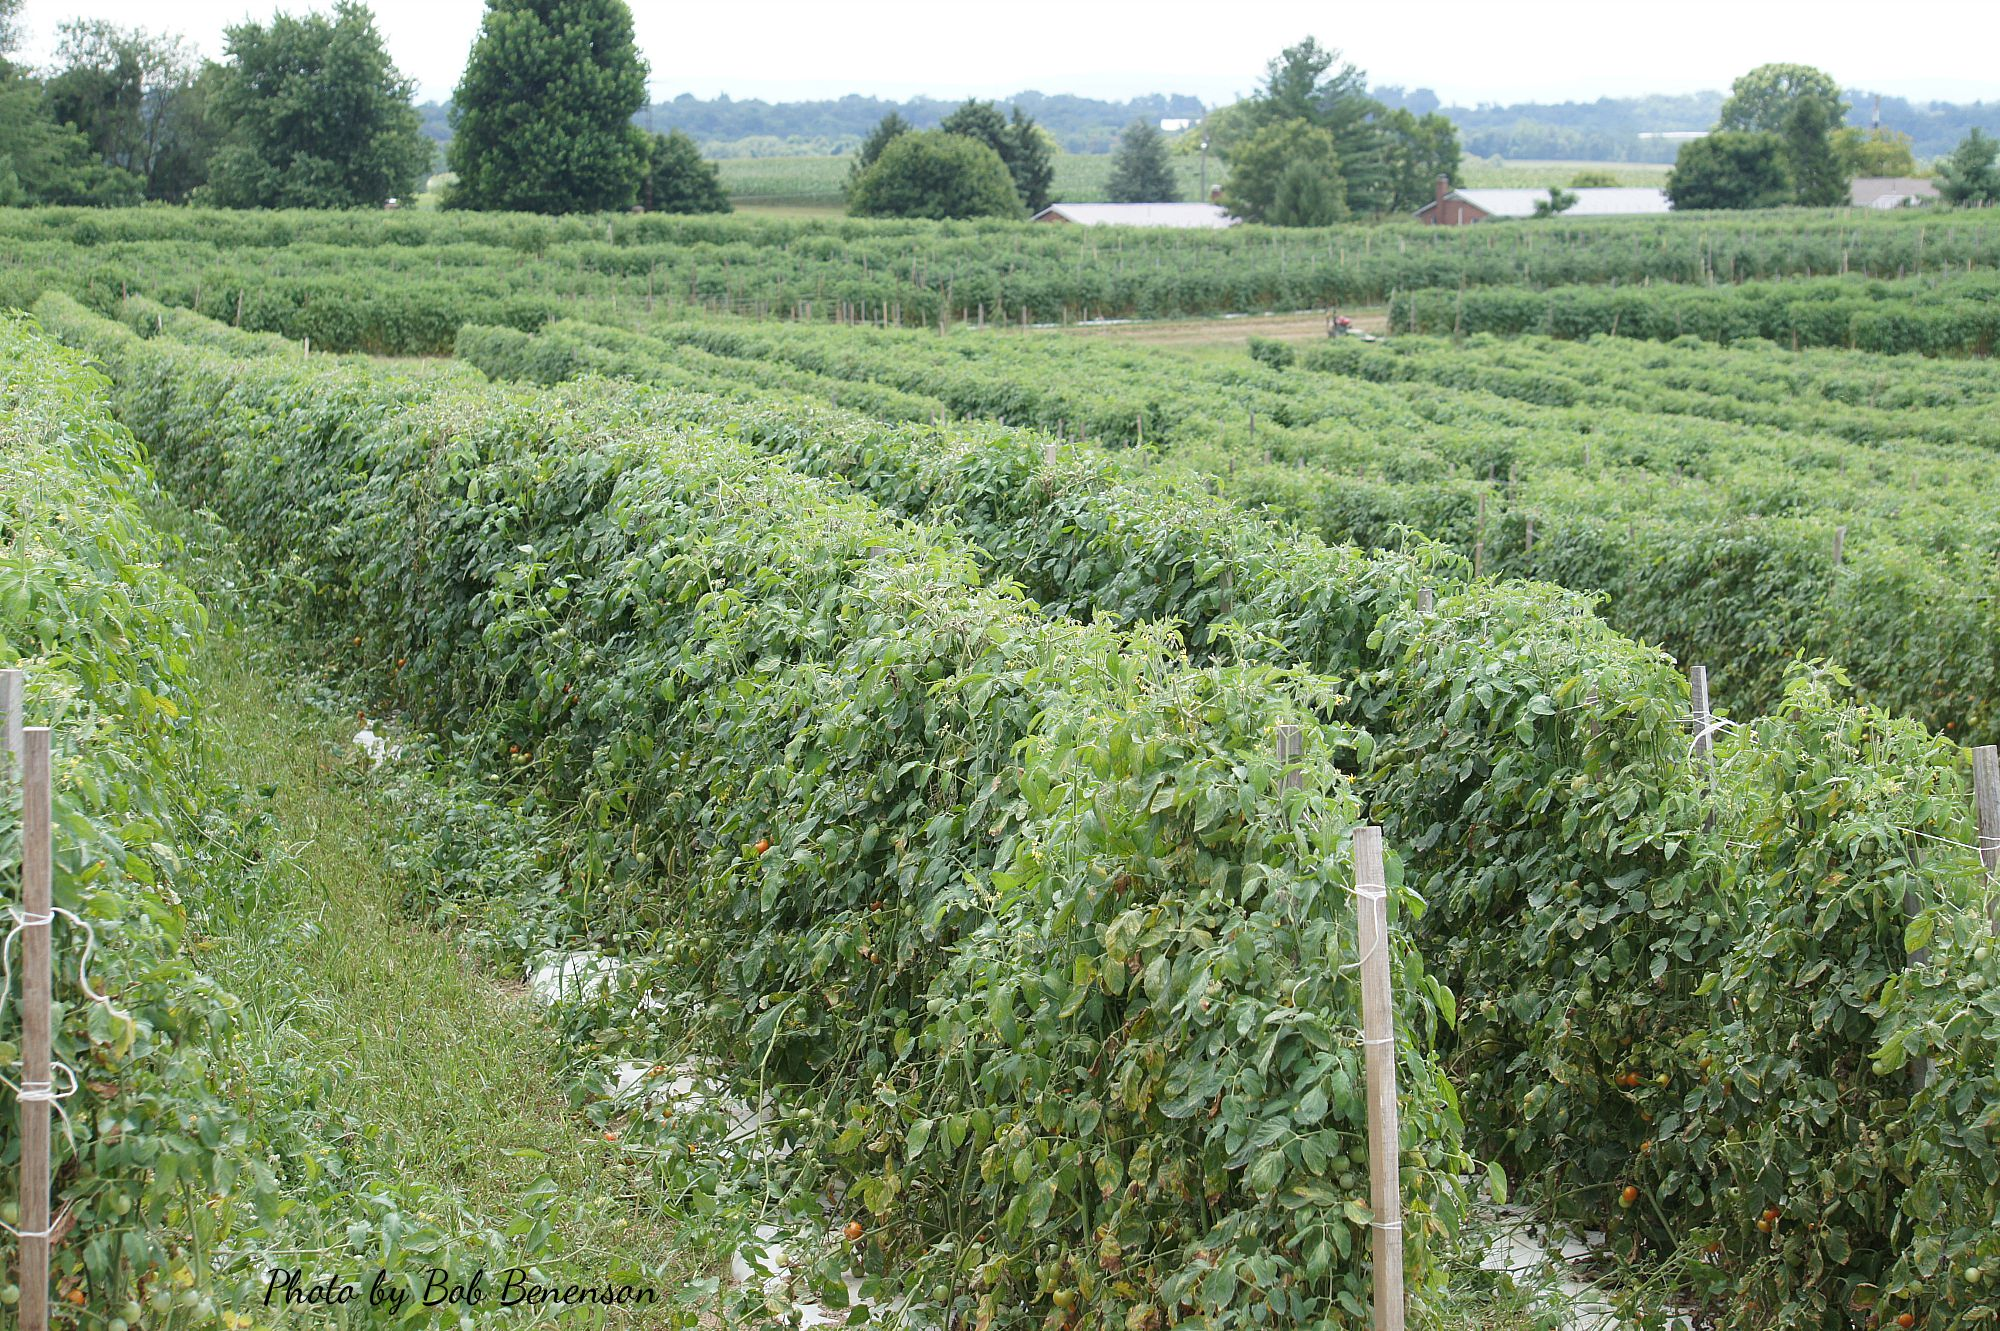 Tomato fields at Lady Moon Farm in Chambersburg, Pa.